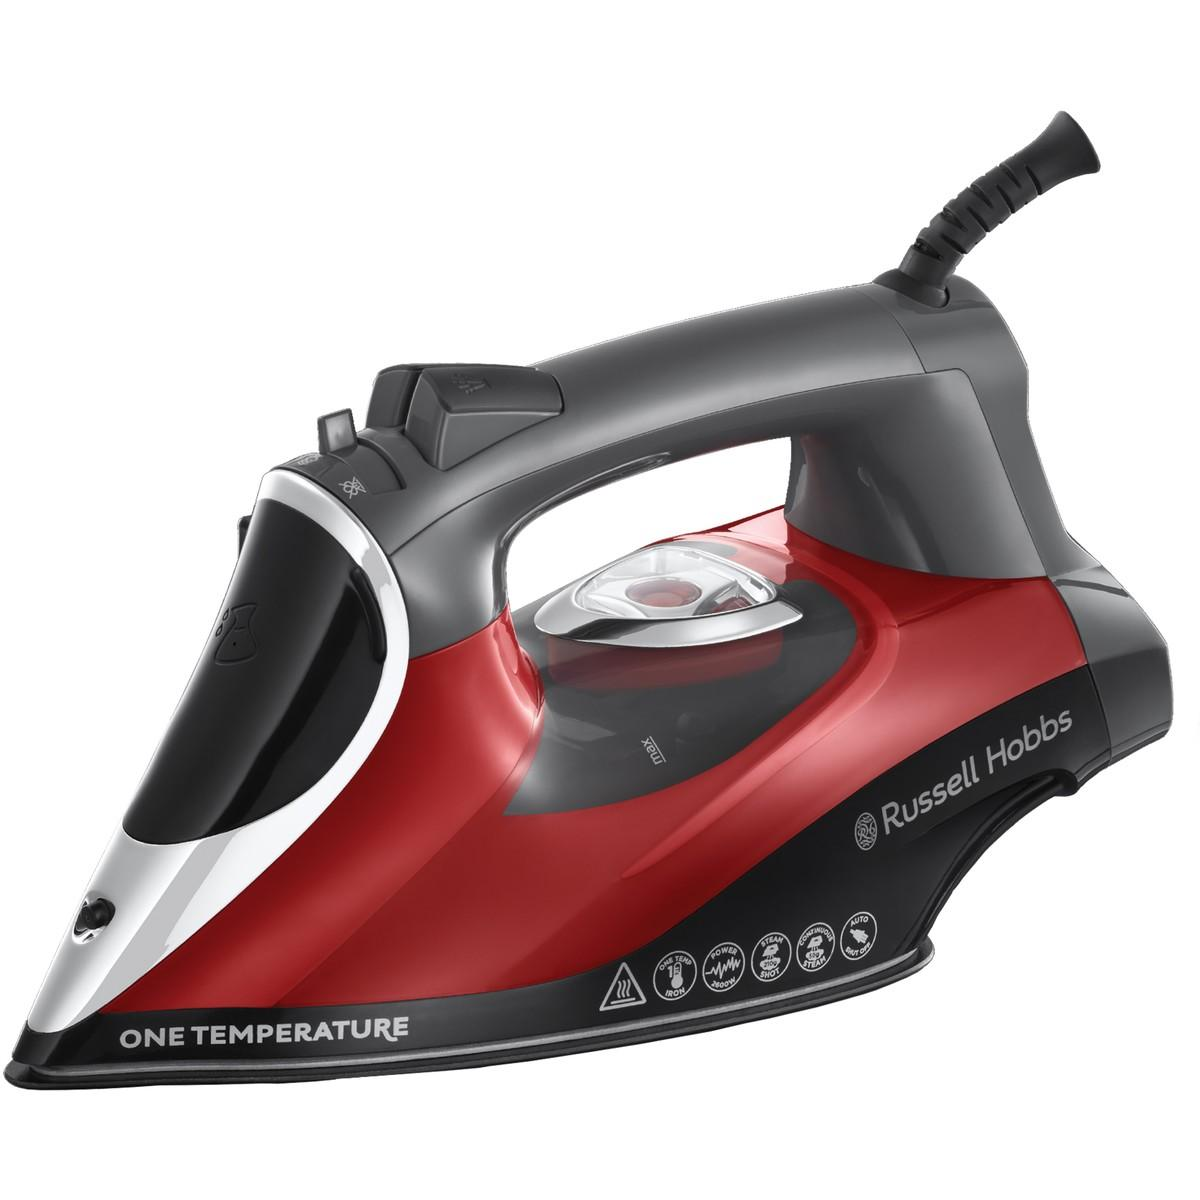 Russell Hobbs One Temperature Iron Red – 25090-56